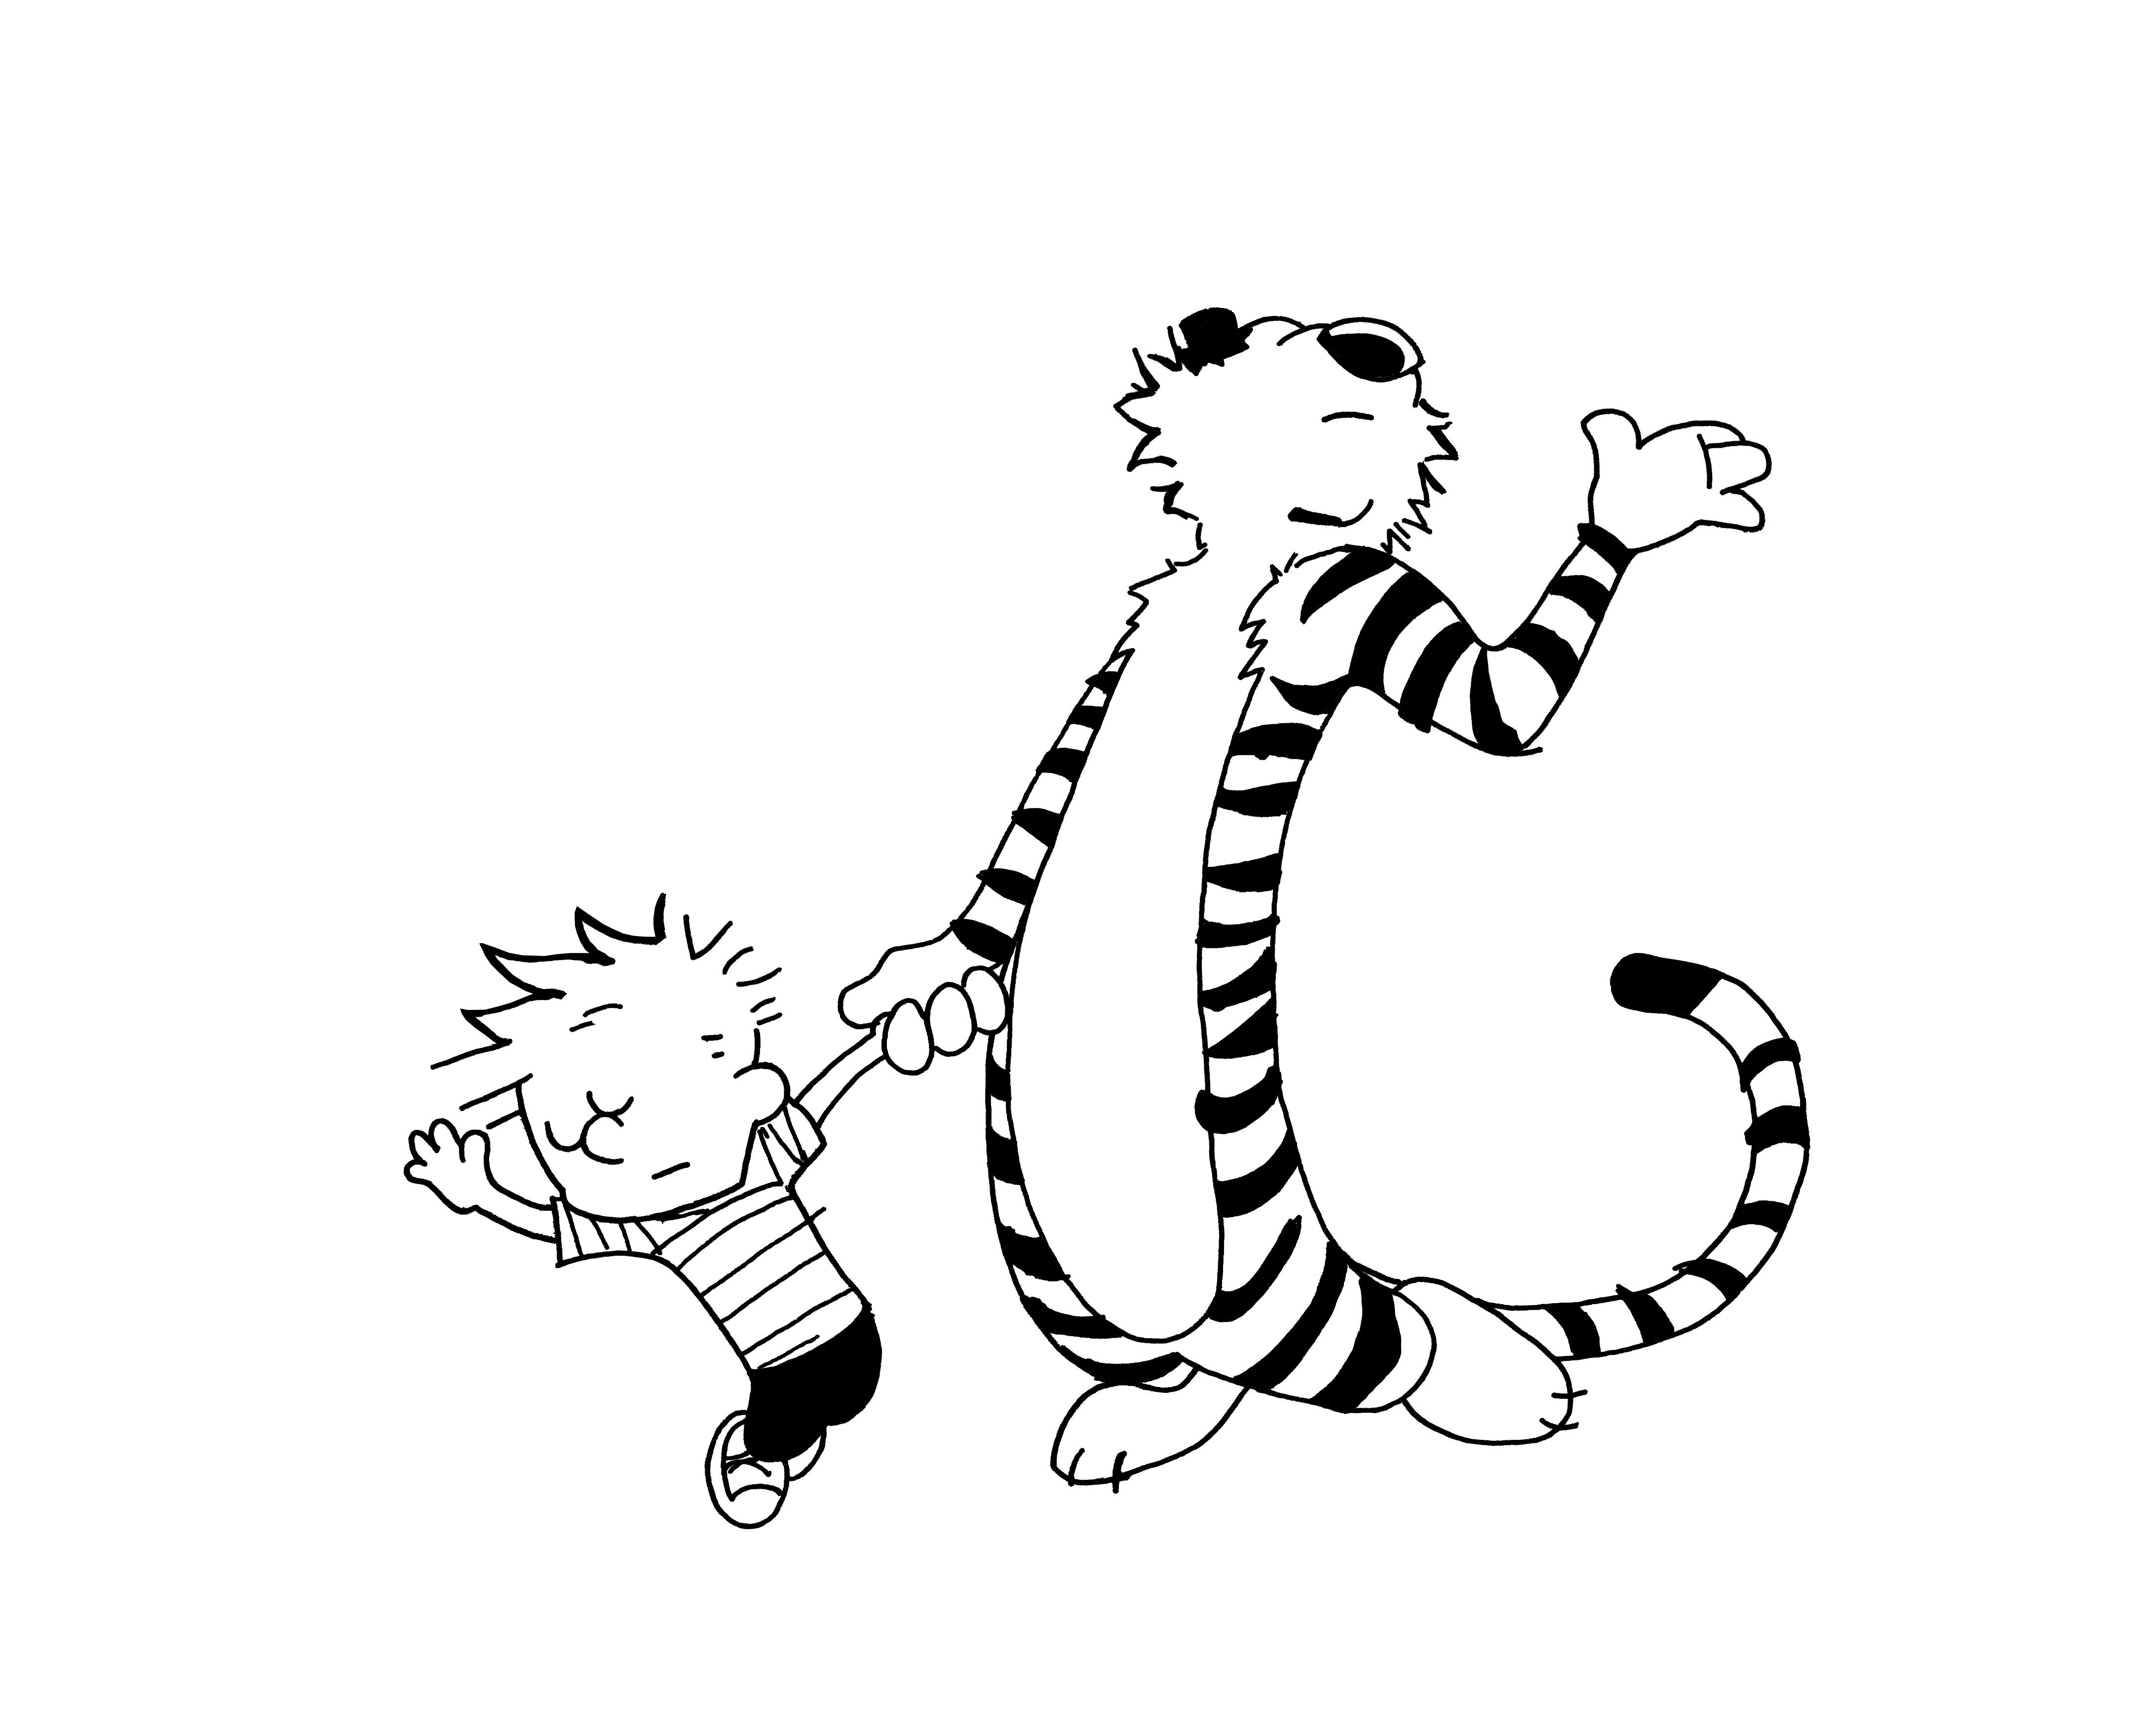 calvin and hobbes coloring pages calvin hobbes Colouring Pages | BODY ART | Calvin, hobbes  calvin and hobbes coloring pages